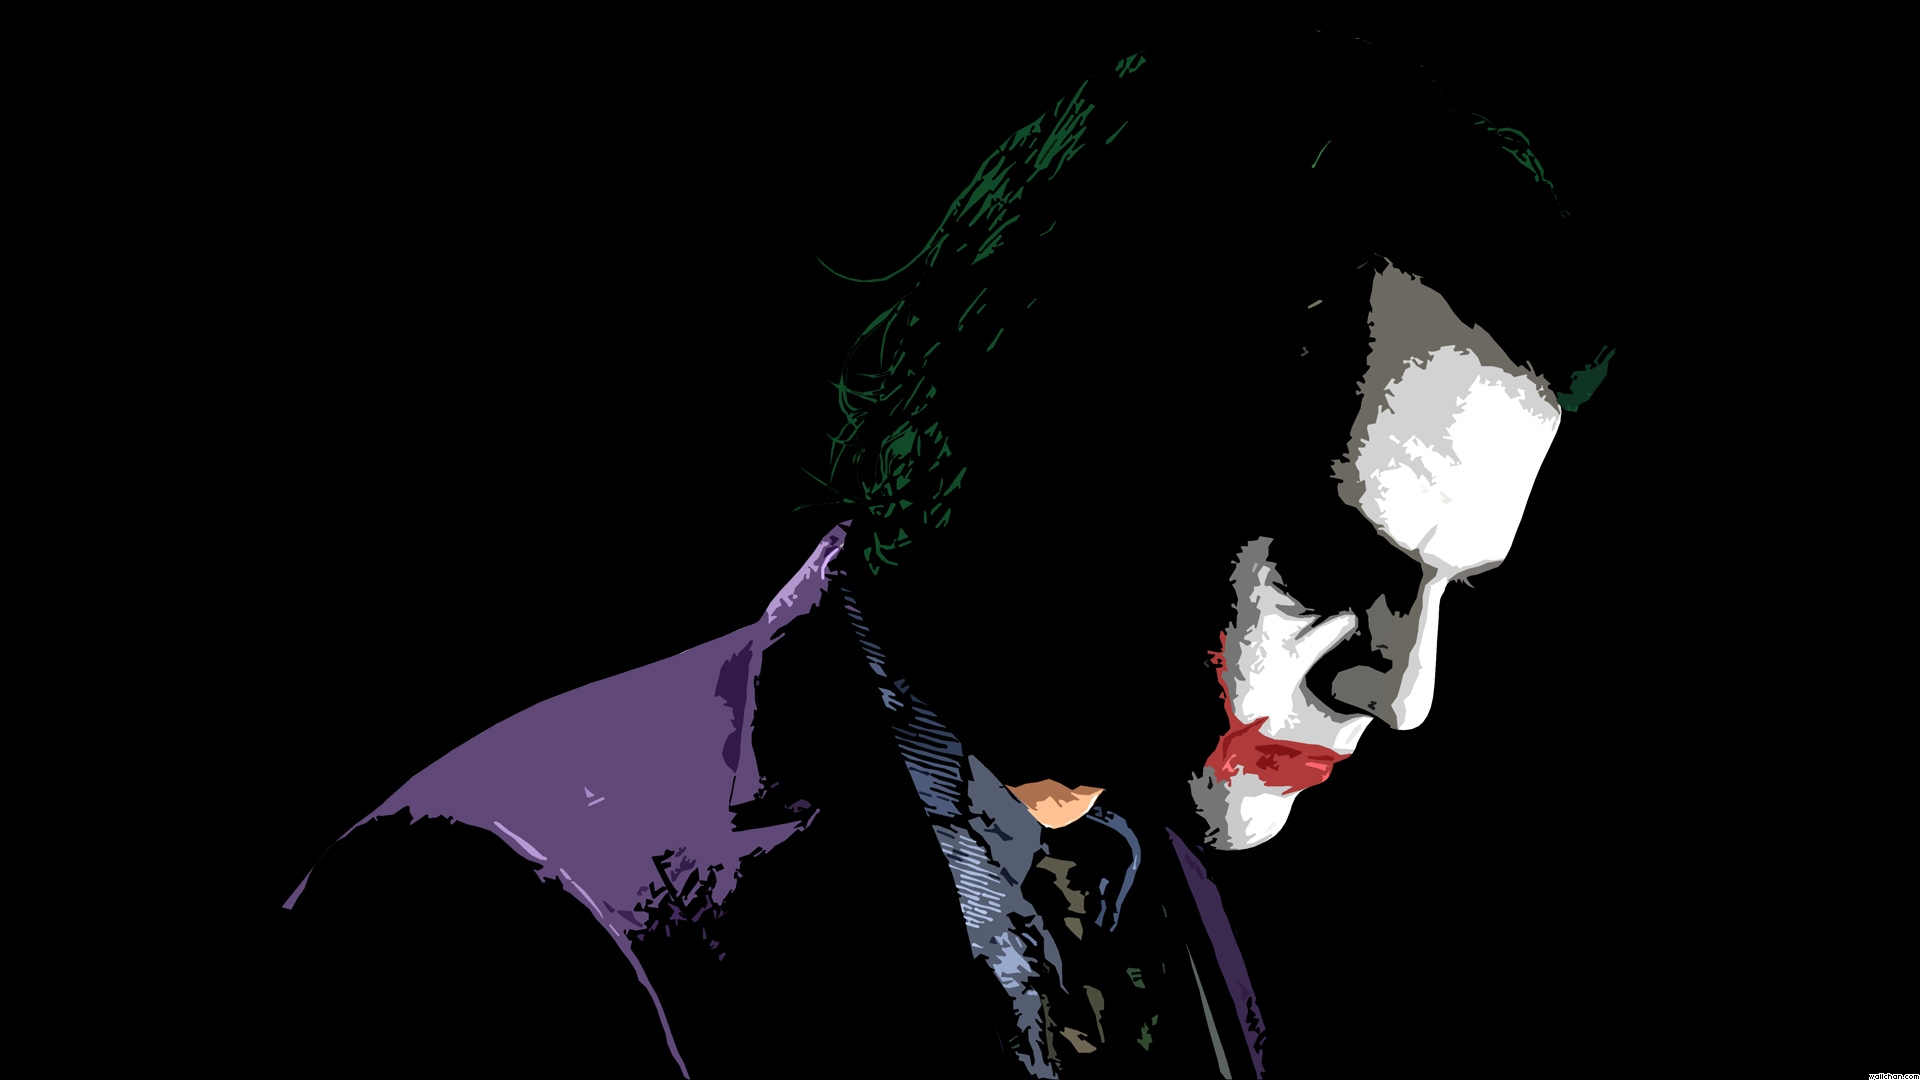 26400-joker-batman-dark-knight-movie-movies.jpg